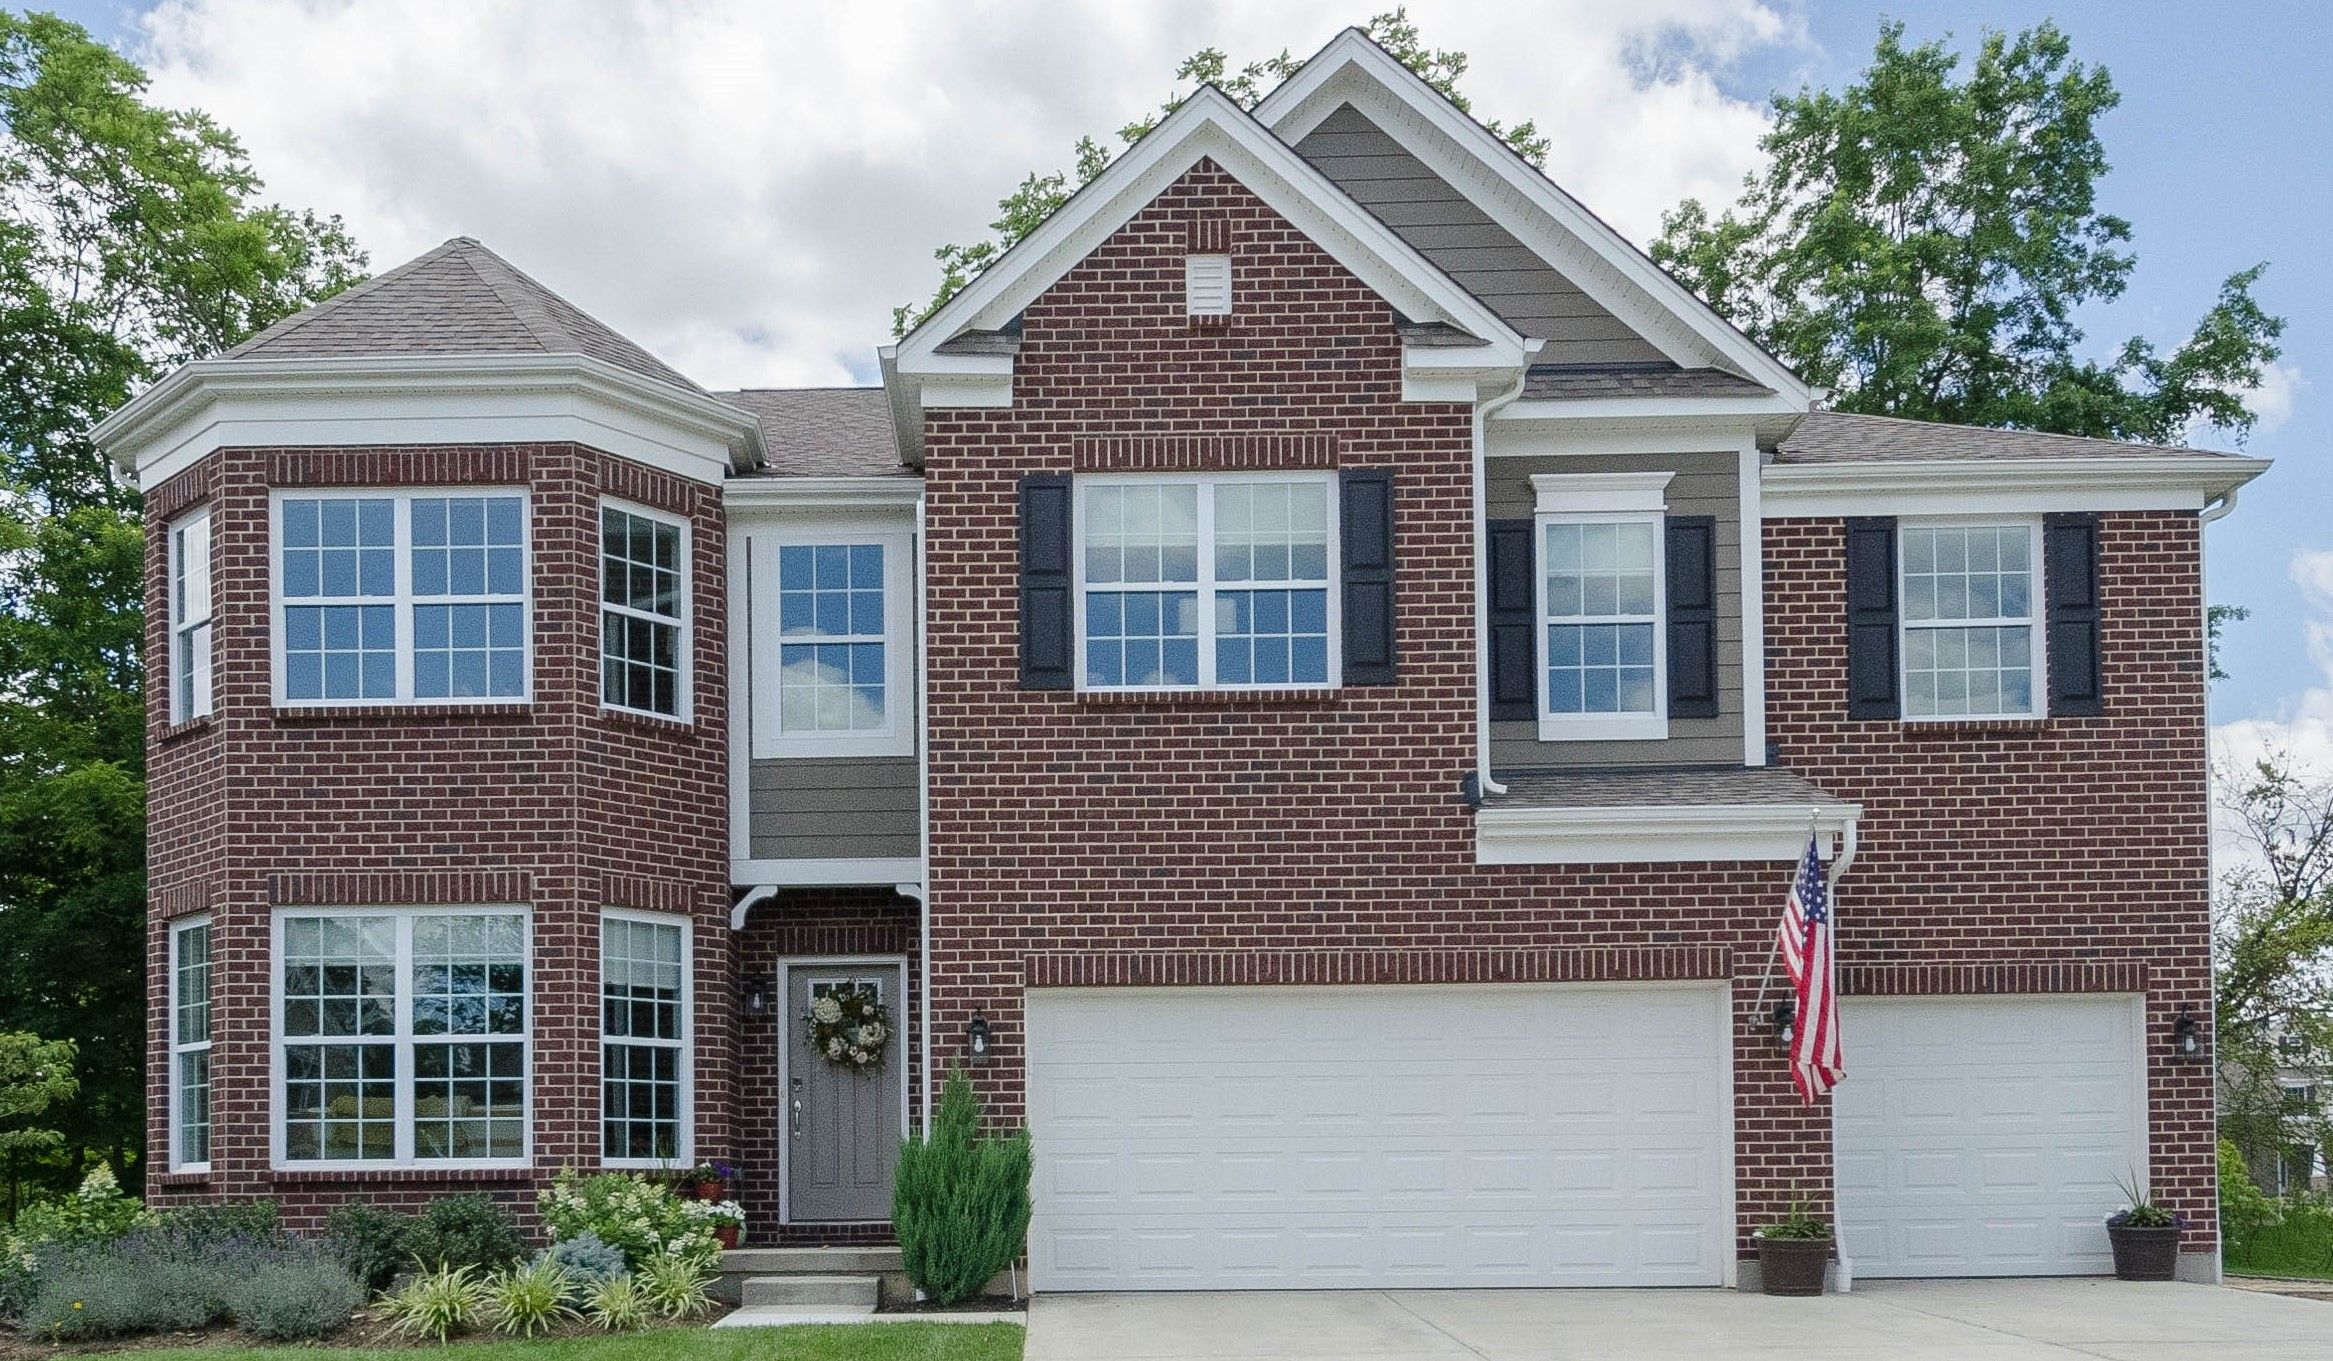 Federal Hill Brick Timber Bark Hardie Siding Black Shutters Rc46 Exterior Brick House Exterior House Styles